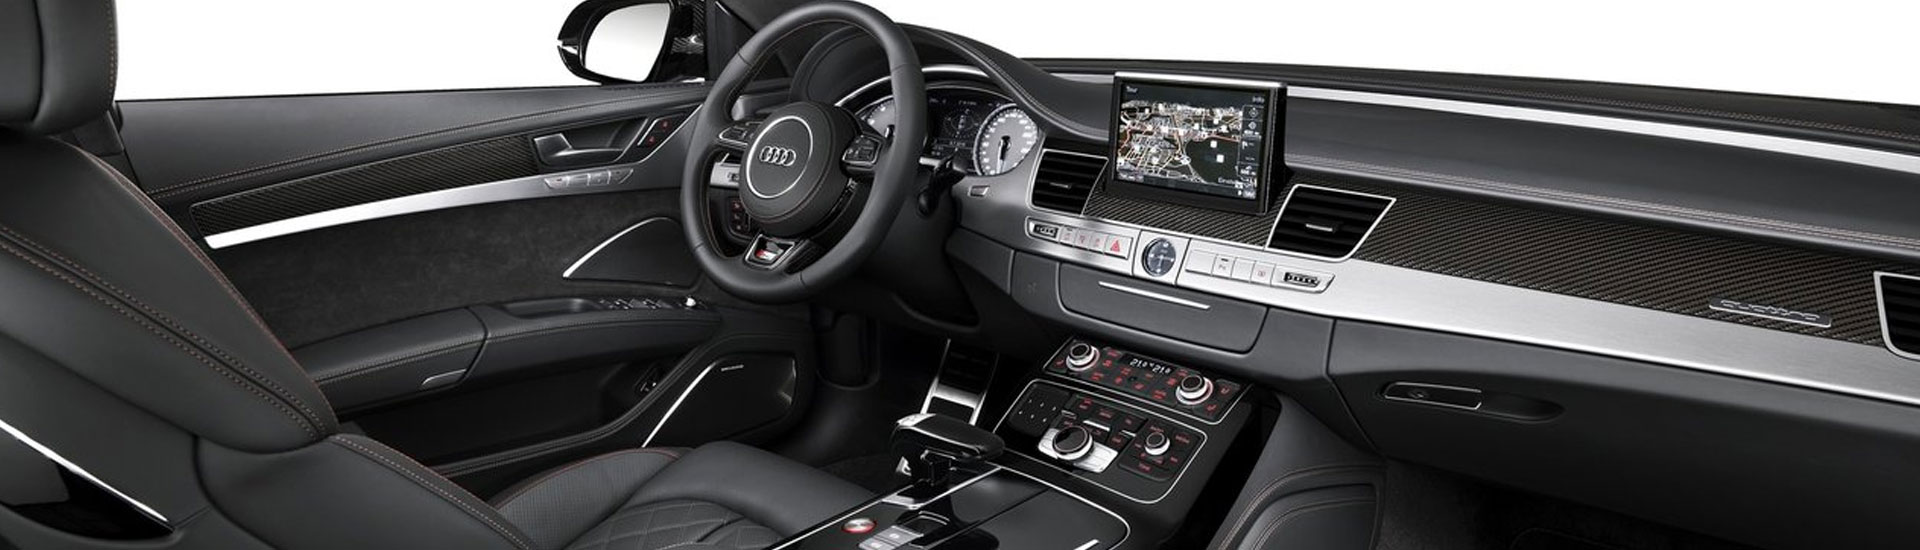 2002 Audi S6 Custom Dash Kits